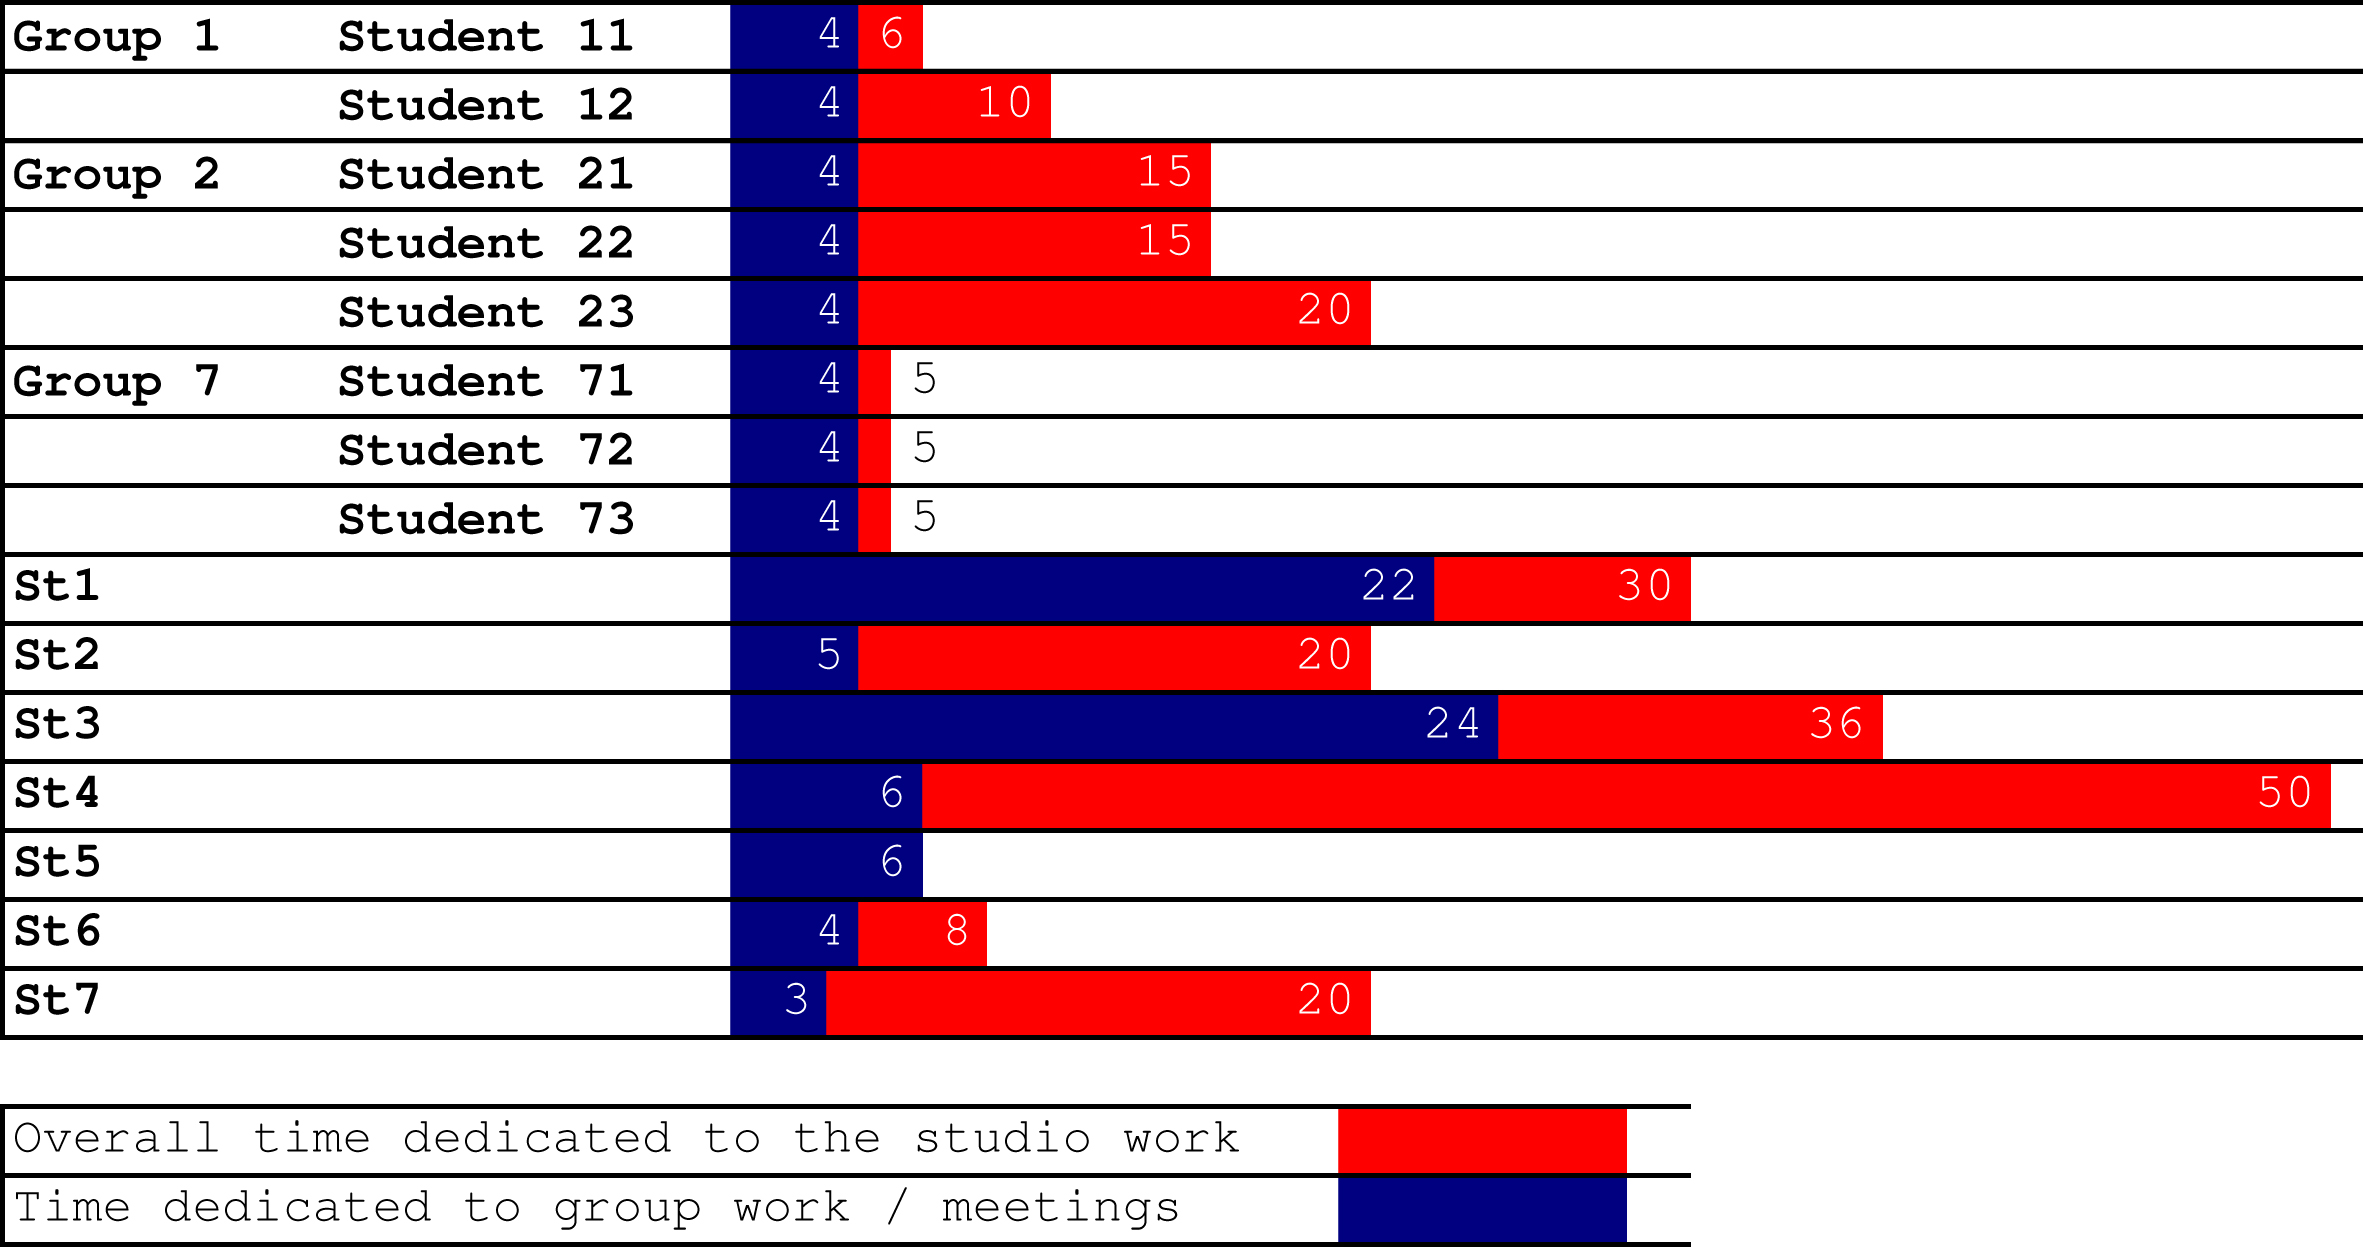 Workload estimation from students. Red indicates the overall time dedicated to studio work, and blue the time decidated only to individual work.